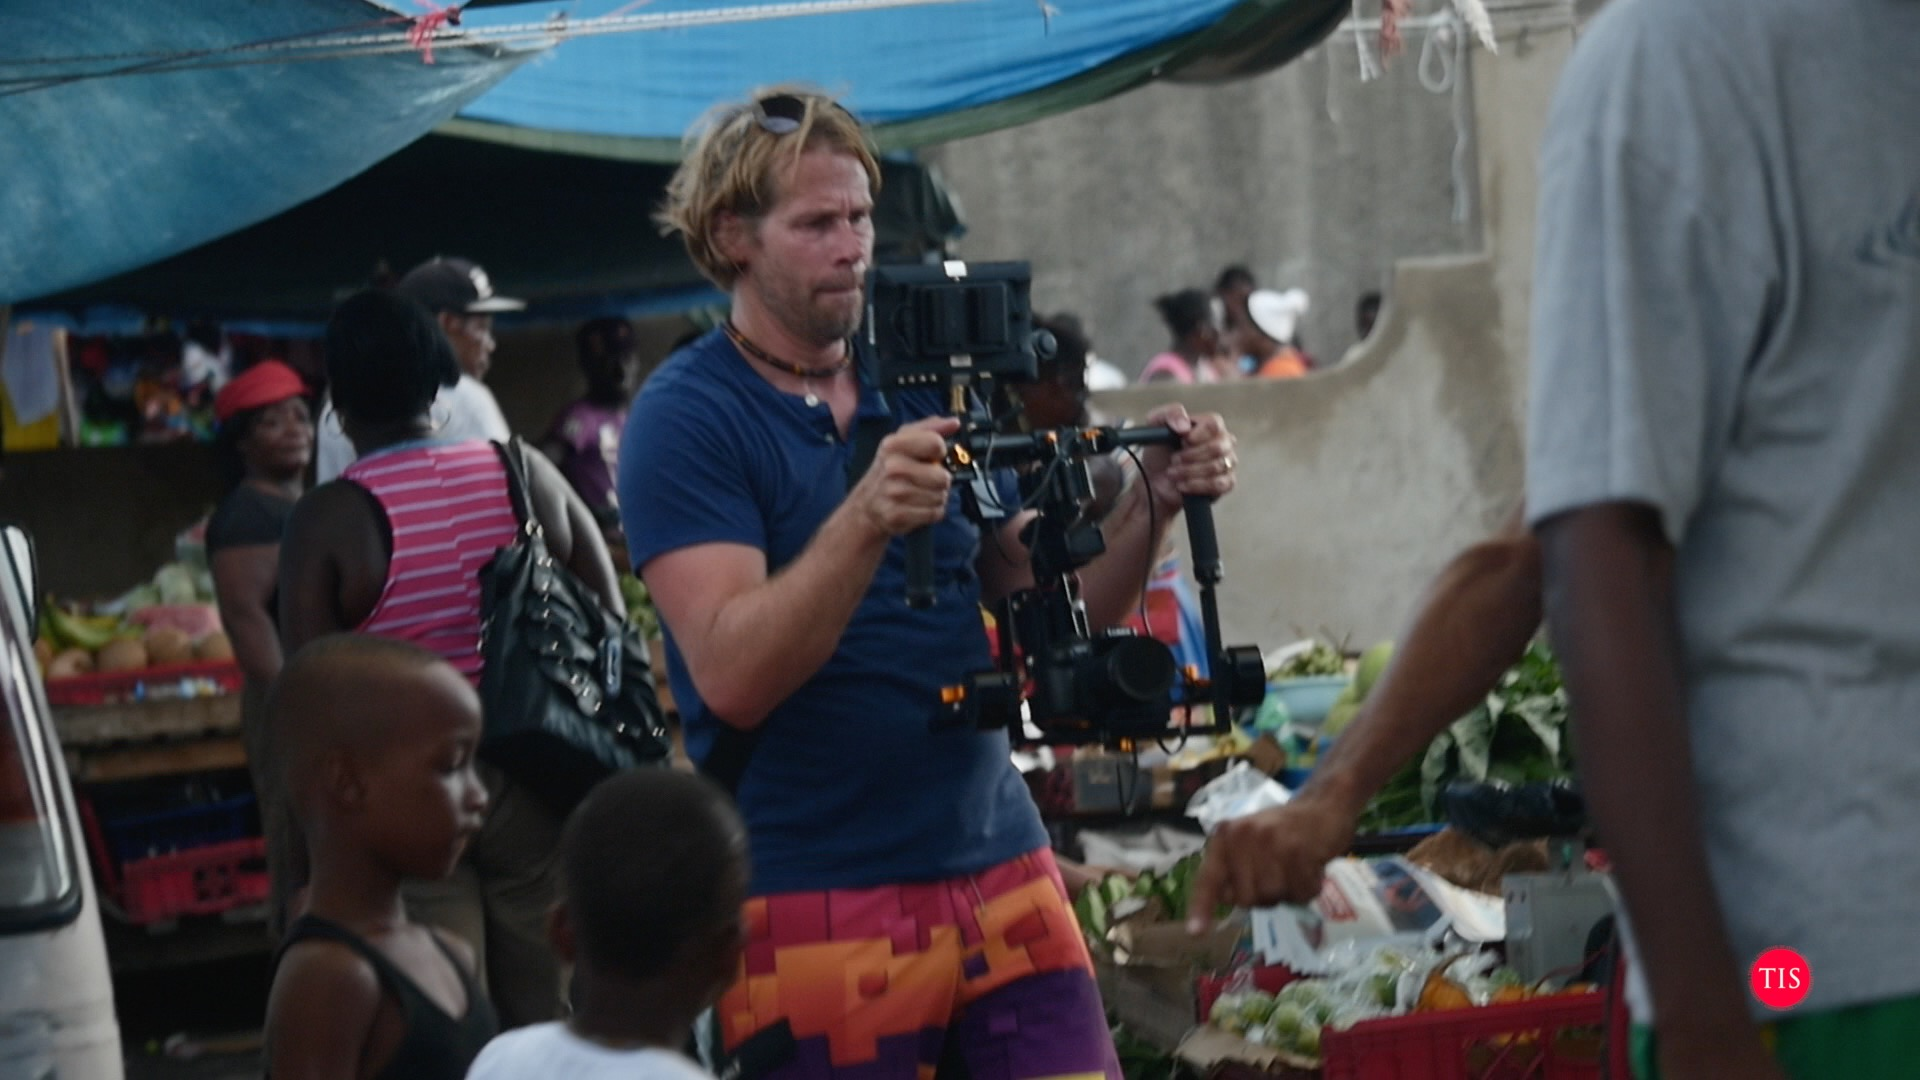 Charles filming a music video on the Lumix GH4 and Defy G5 in Jamaica